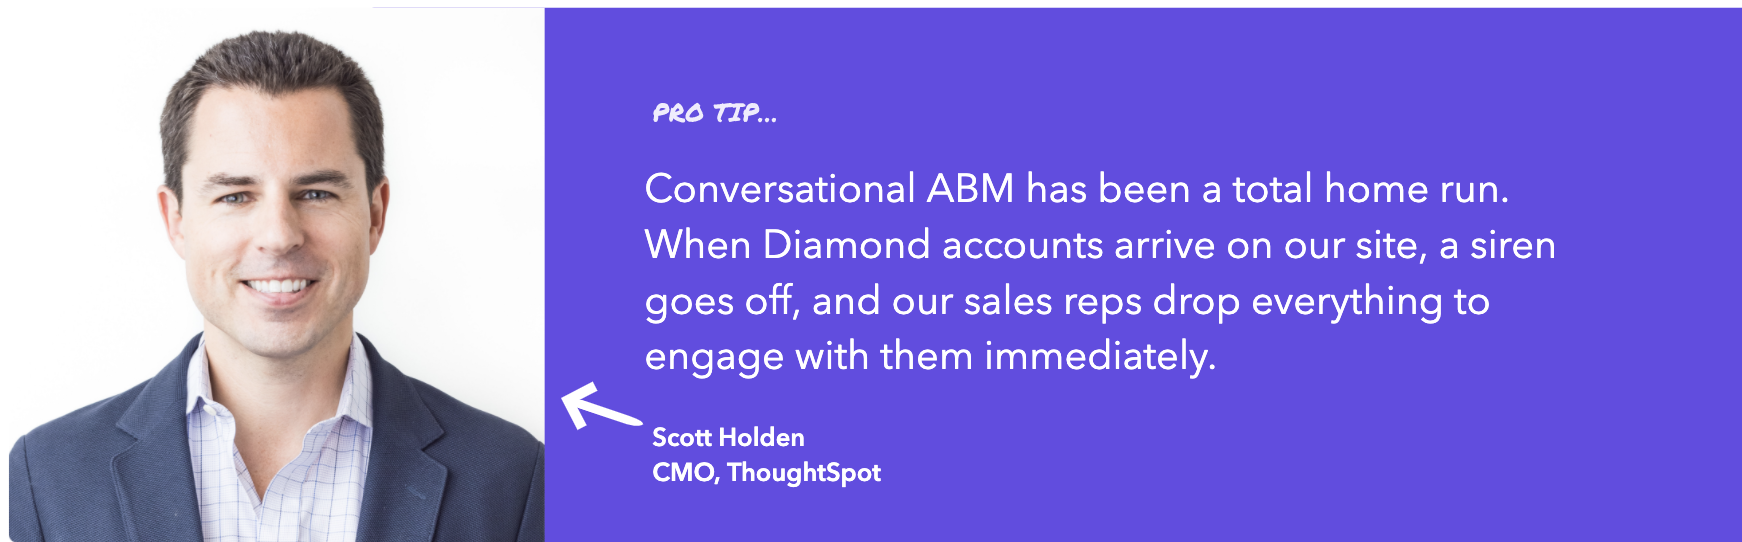 Thoughtspot drives Conversational ABM success with Qualified